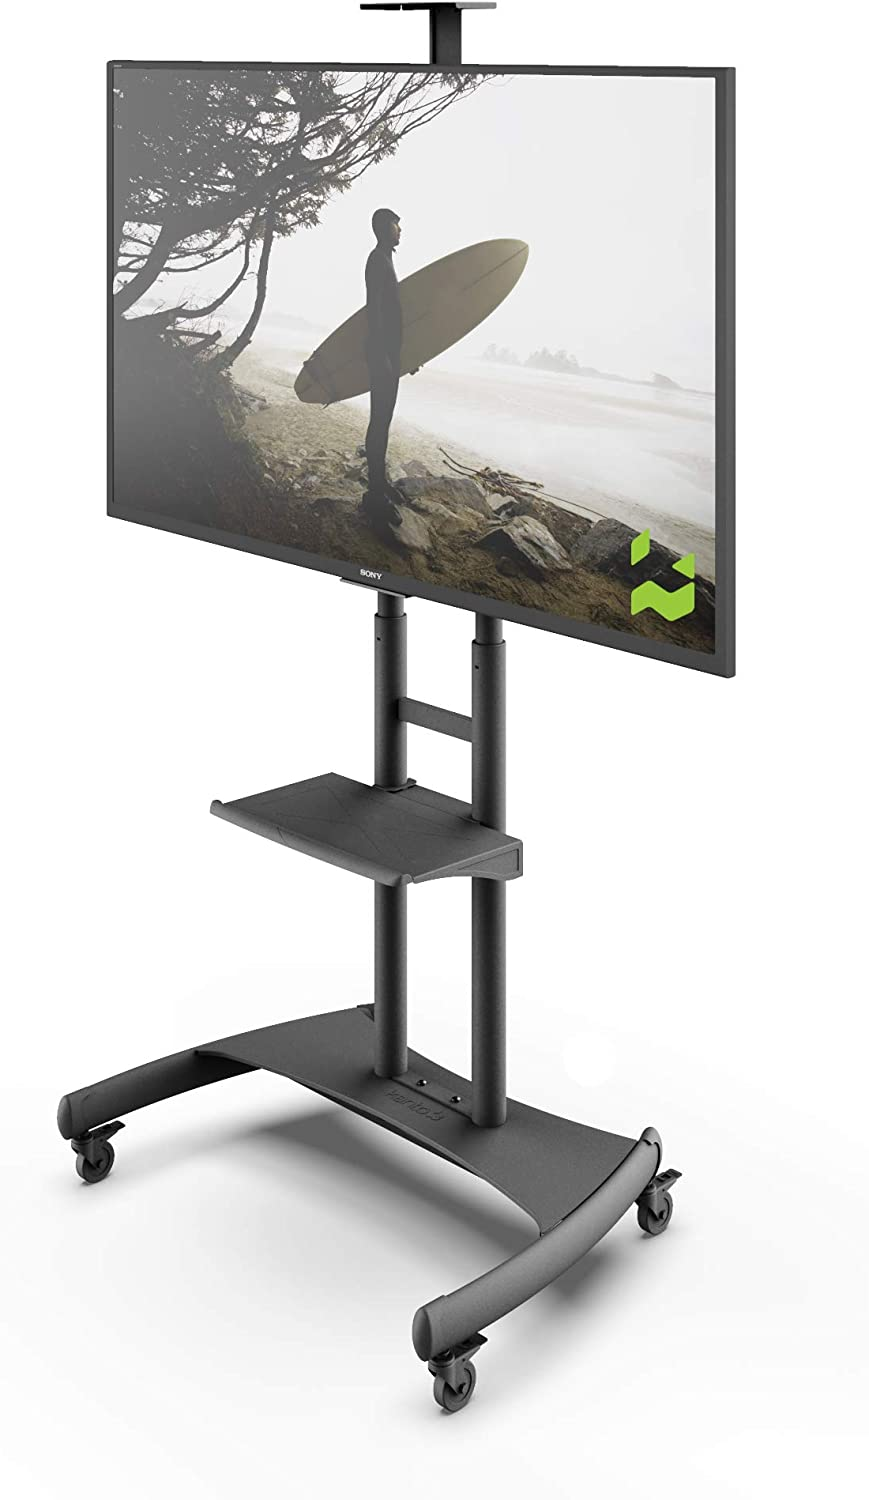 Amazon Com Kanto Mtm82pl Height Adjustable Mobile Tv Stand With Adjustable Shelf For 50 Inch To 82 Inch Tvs Home Audio Theater